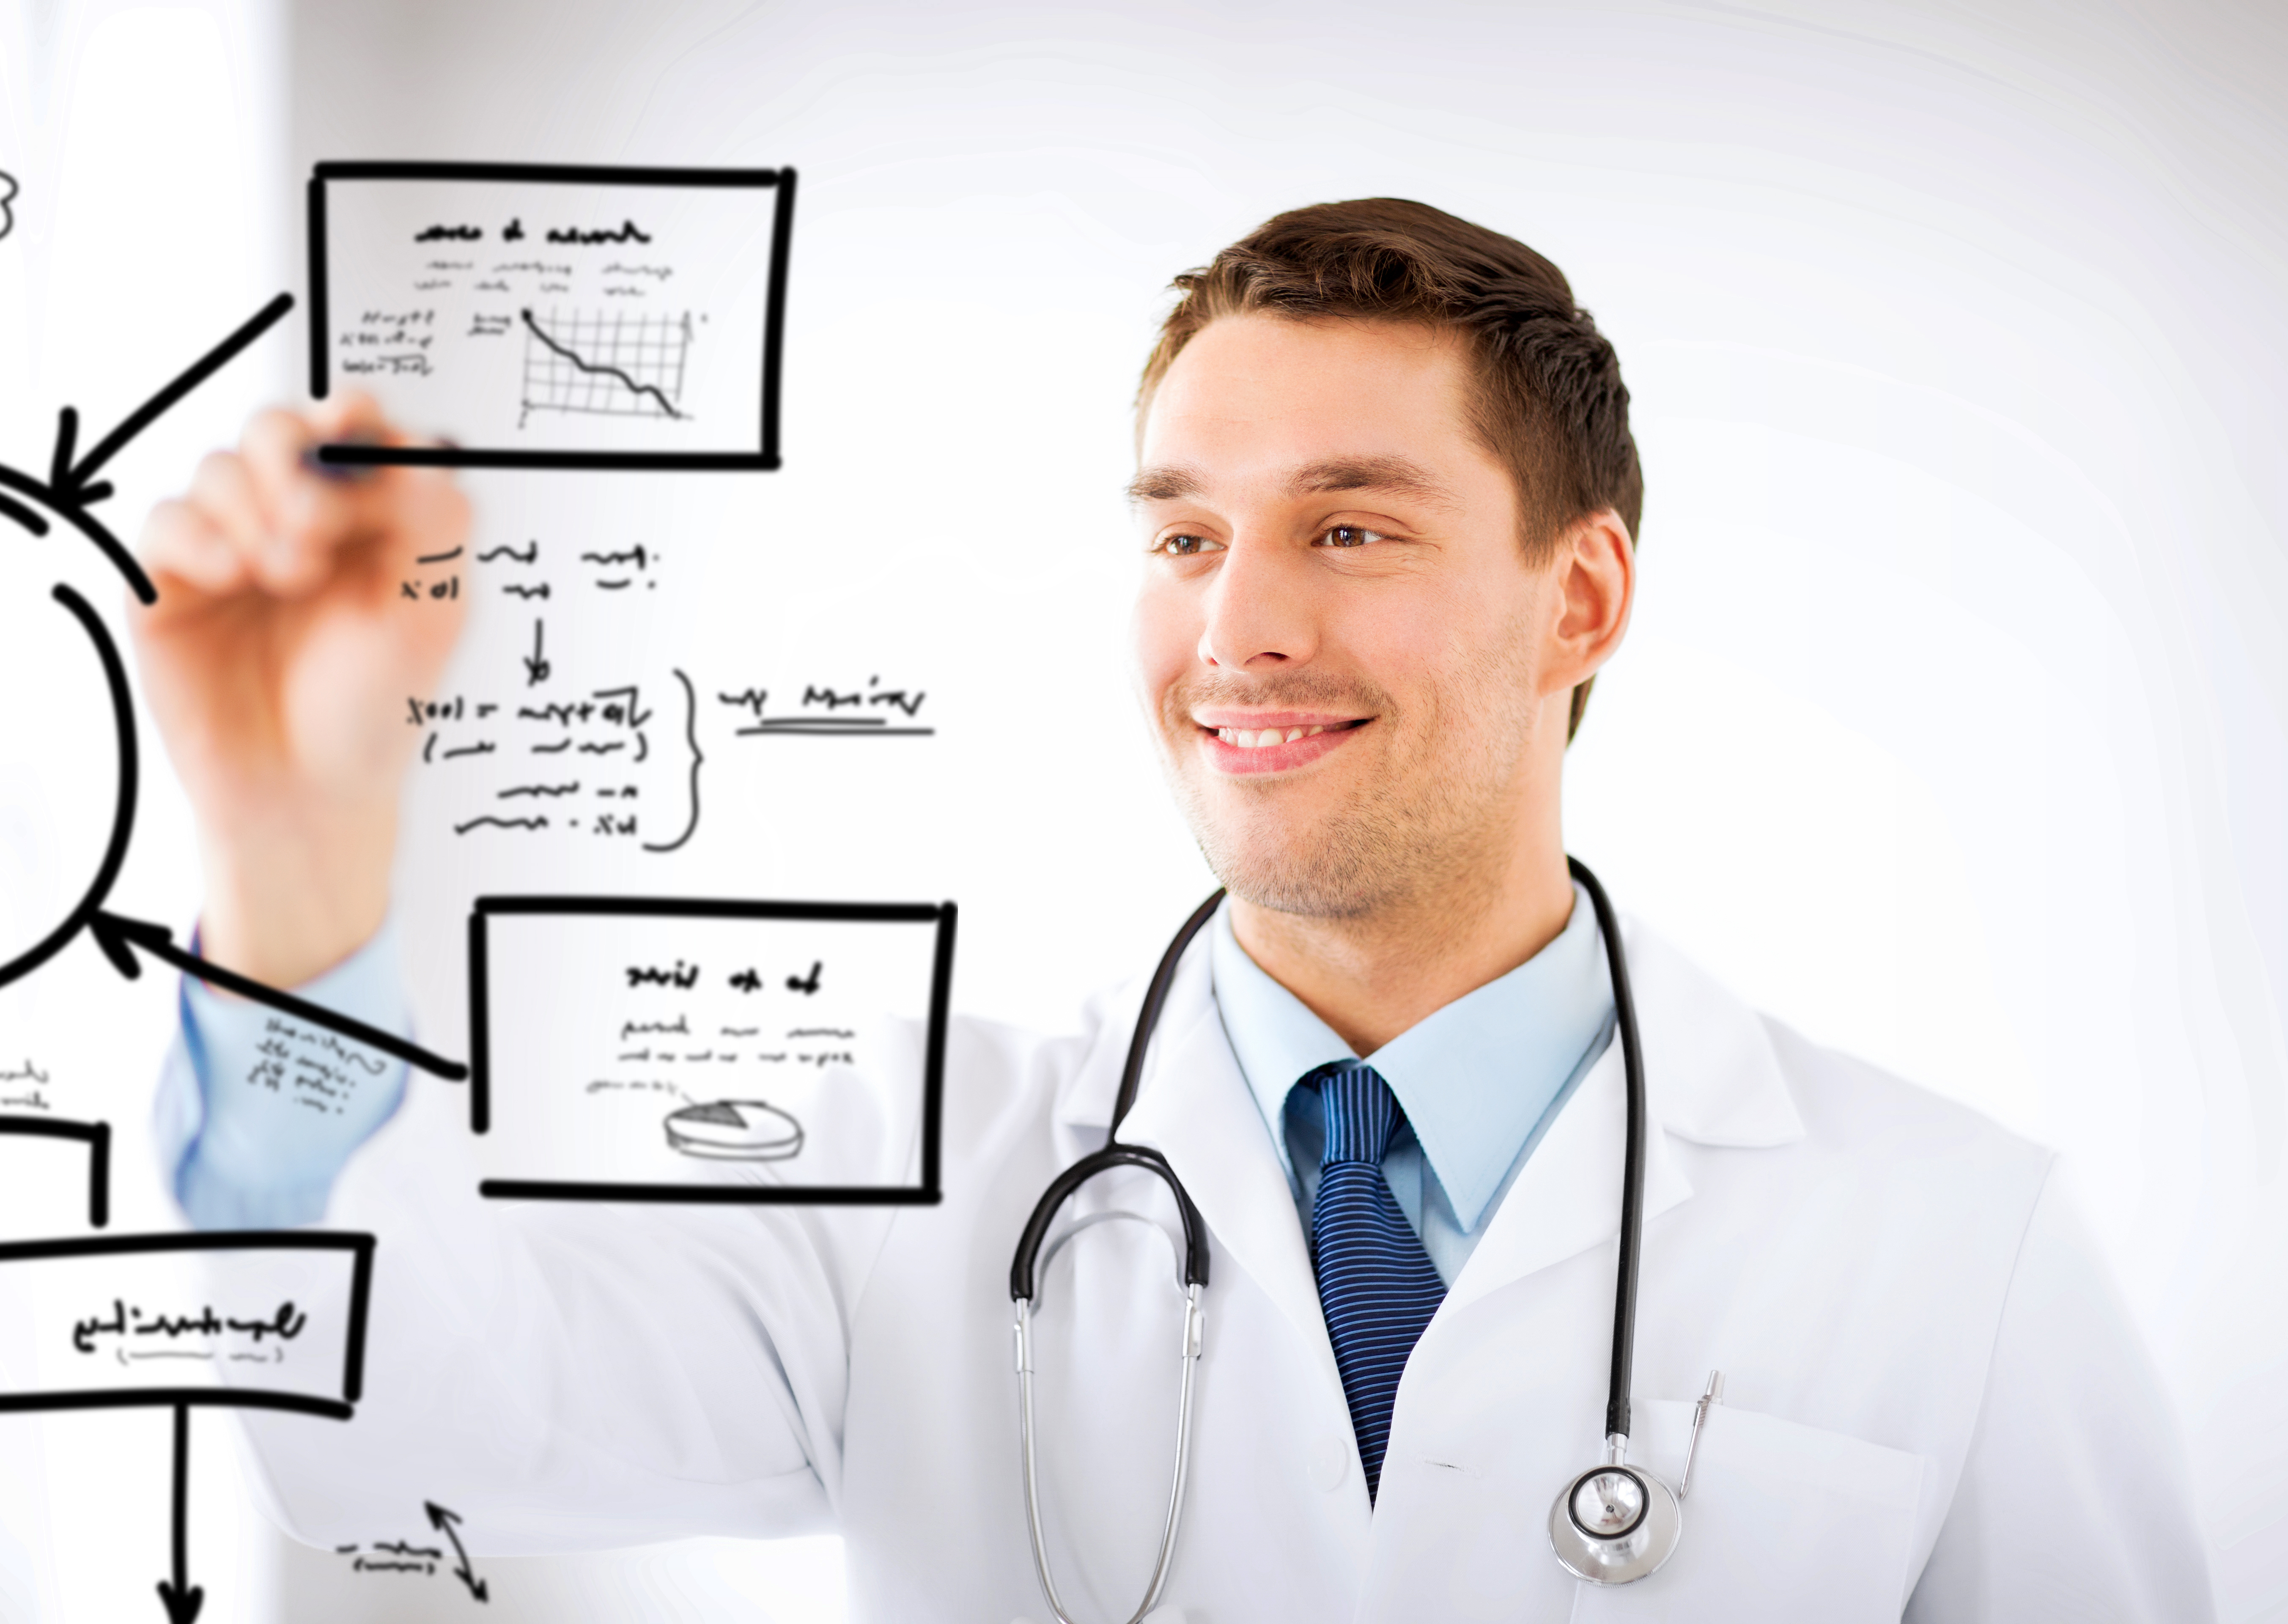 bigstock-healthcare-medical-and-techno-51164608.jpg